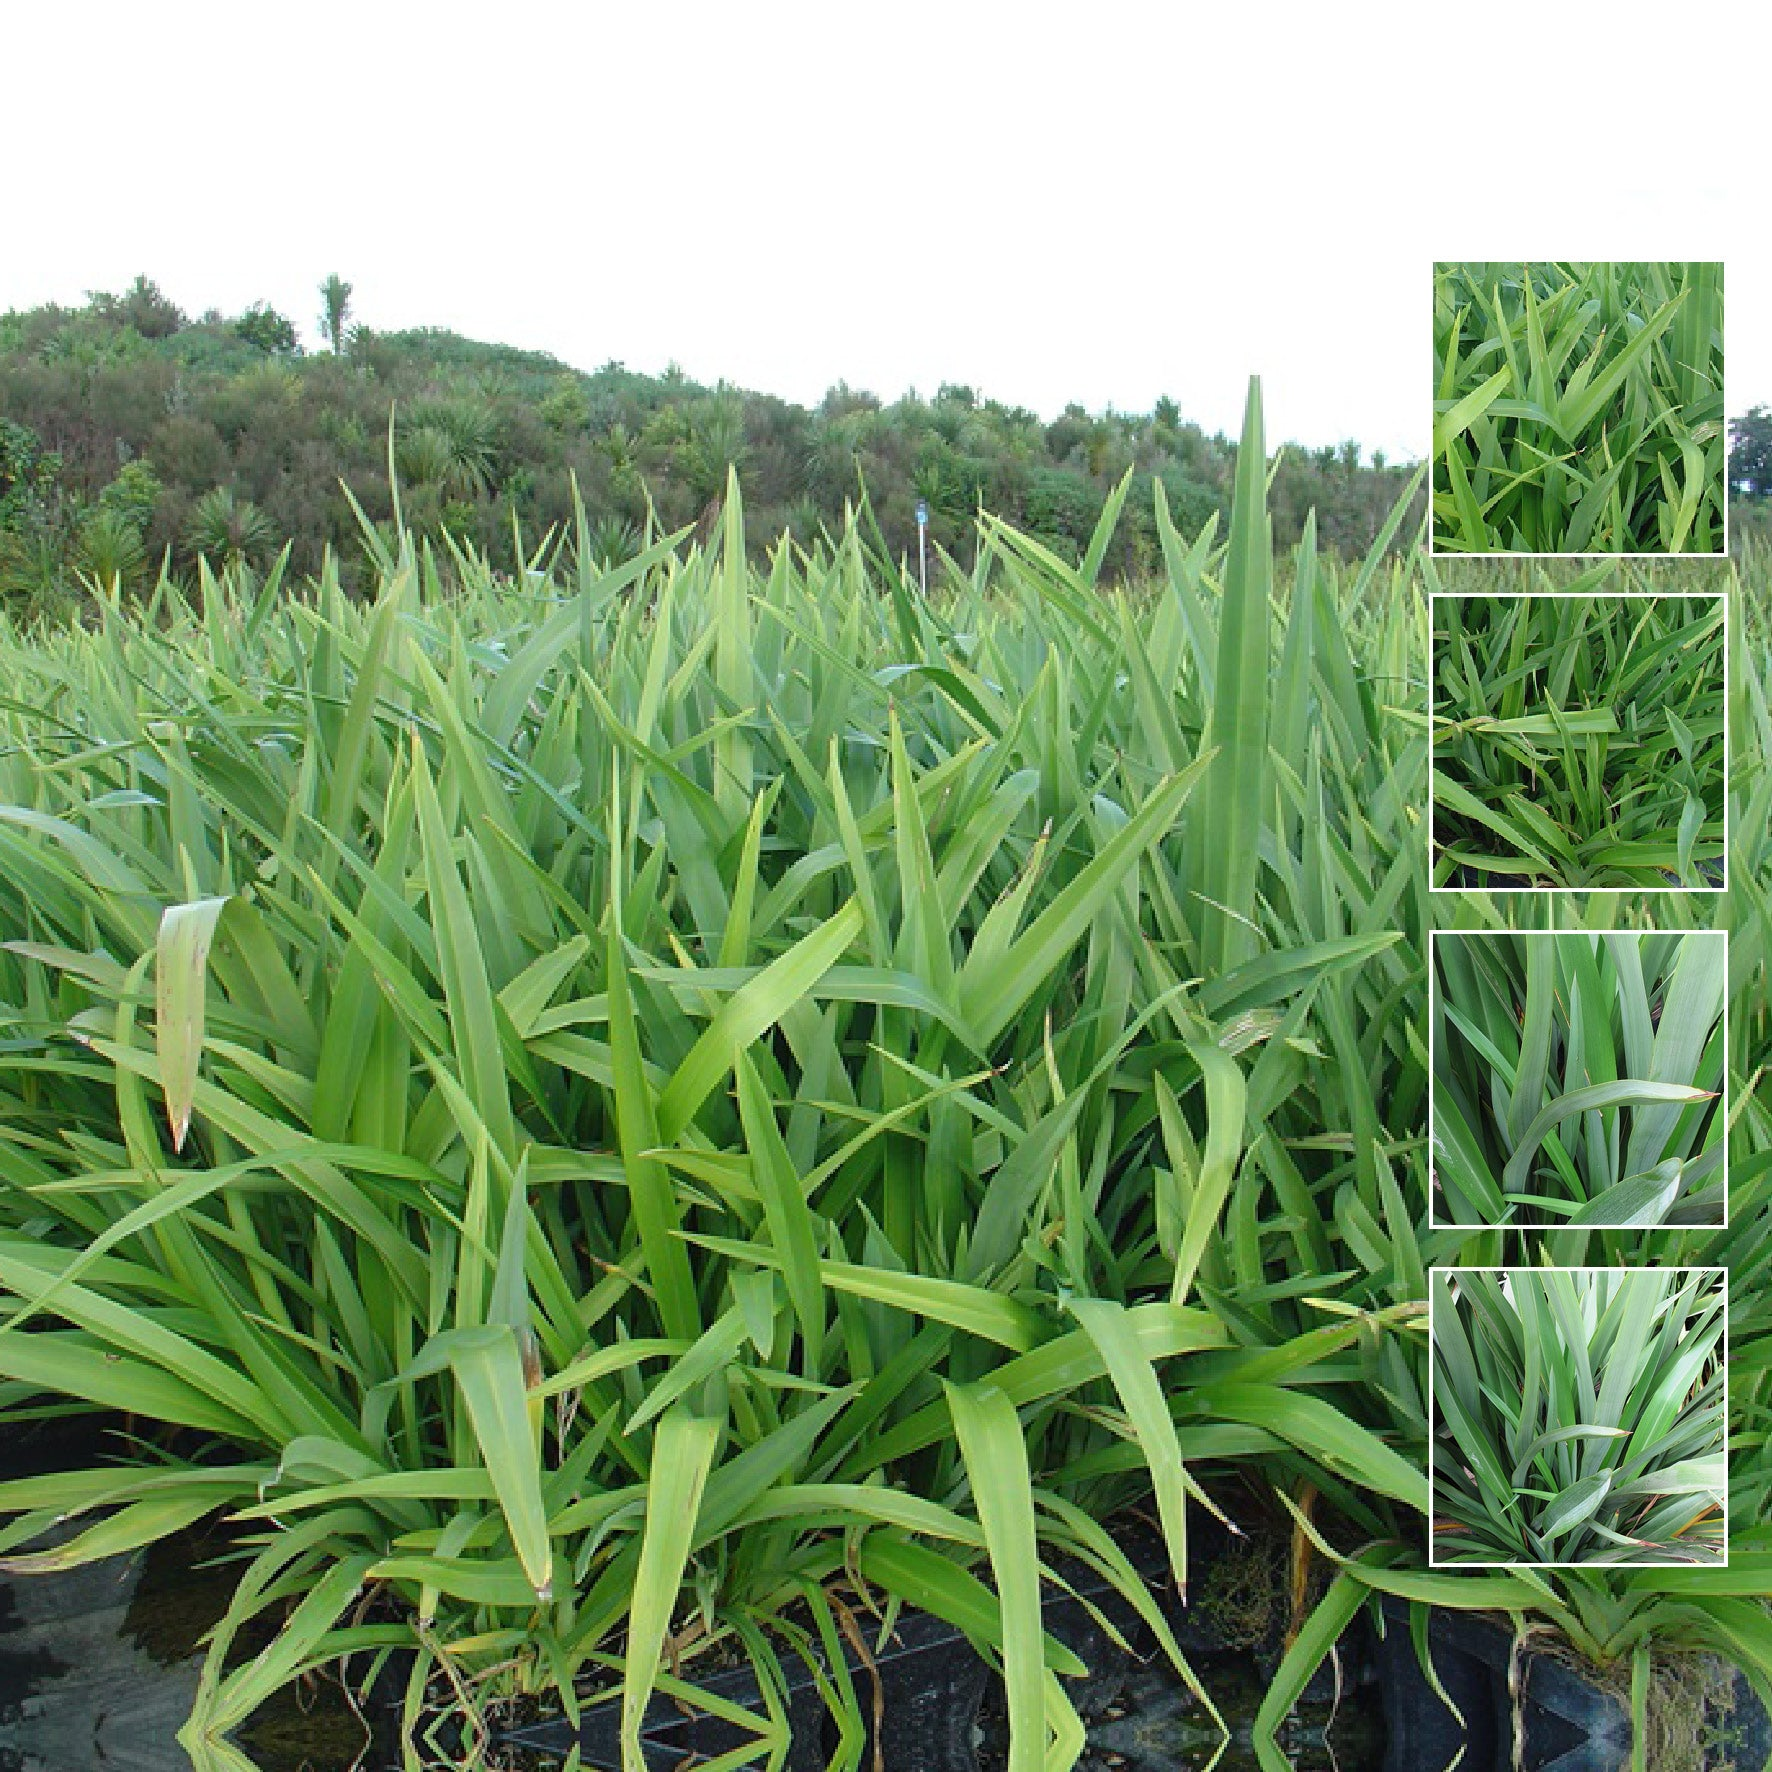 PHORMIUM Cookianum Dwarf Green Seeds. Compact flax for designer landscapes